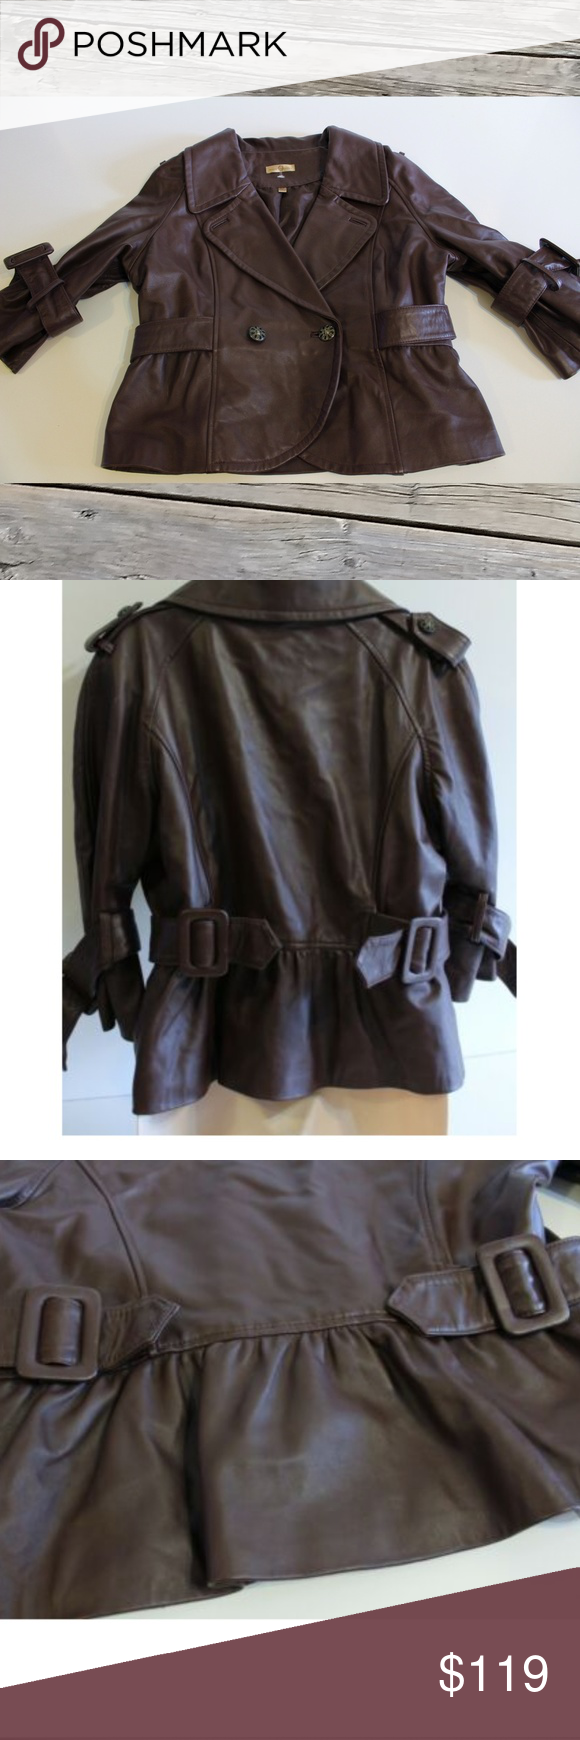 Vintage Wilson's Brown Leather Jacket Size L in 2020 ...